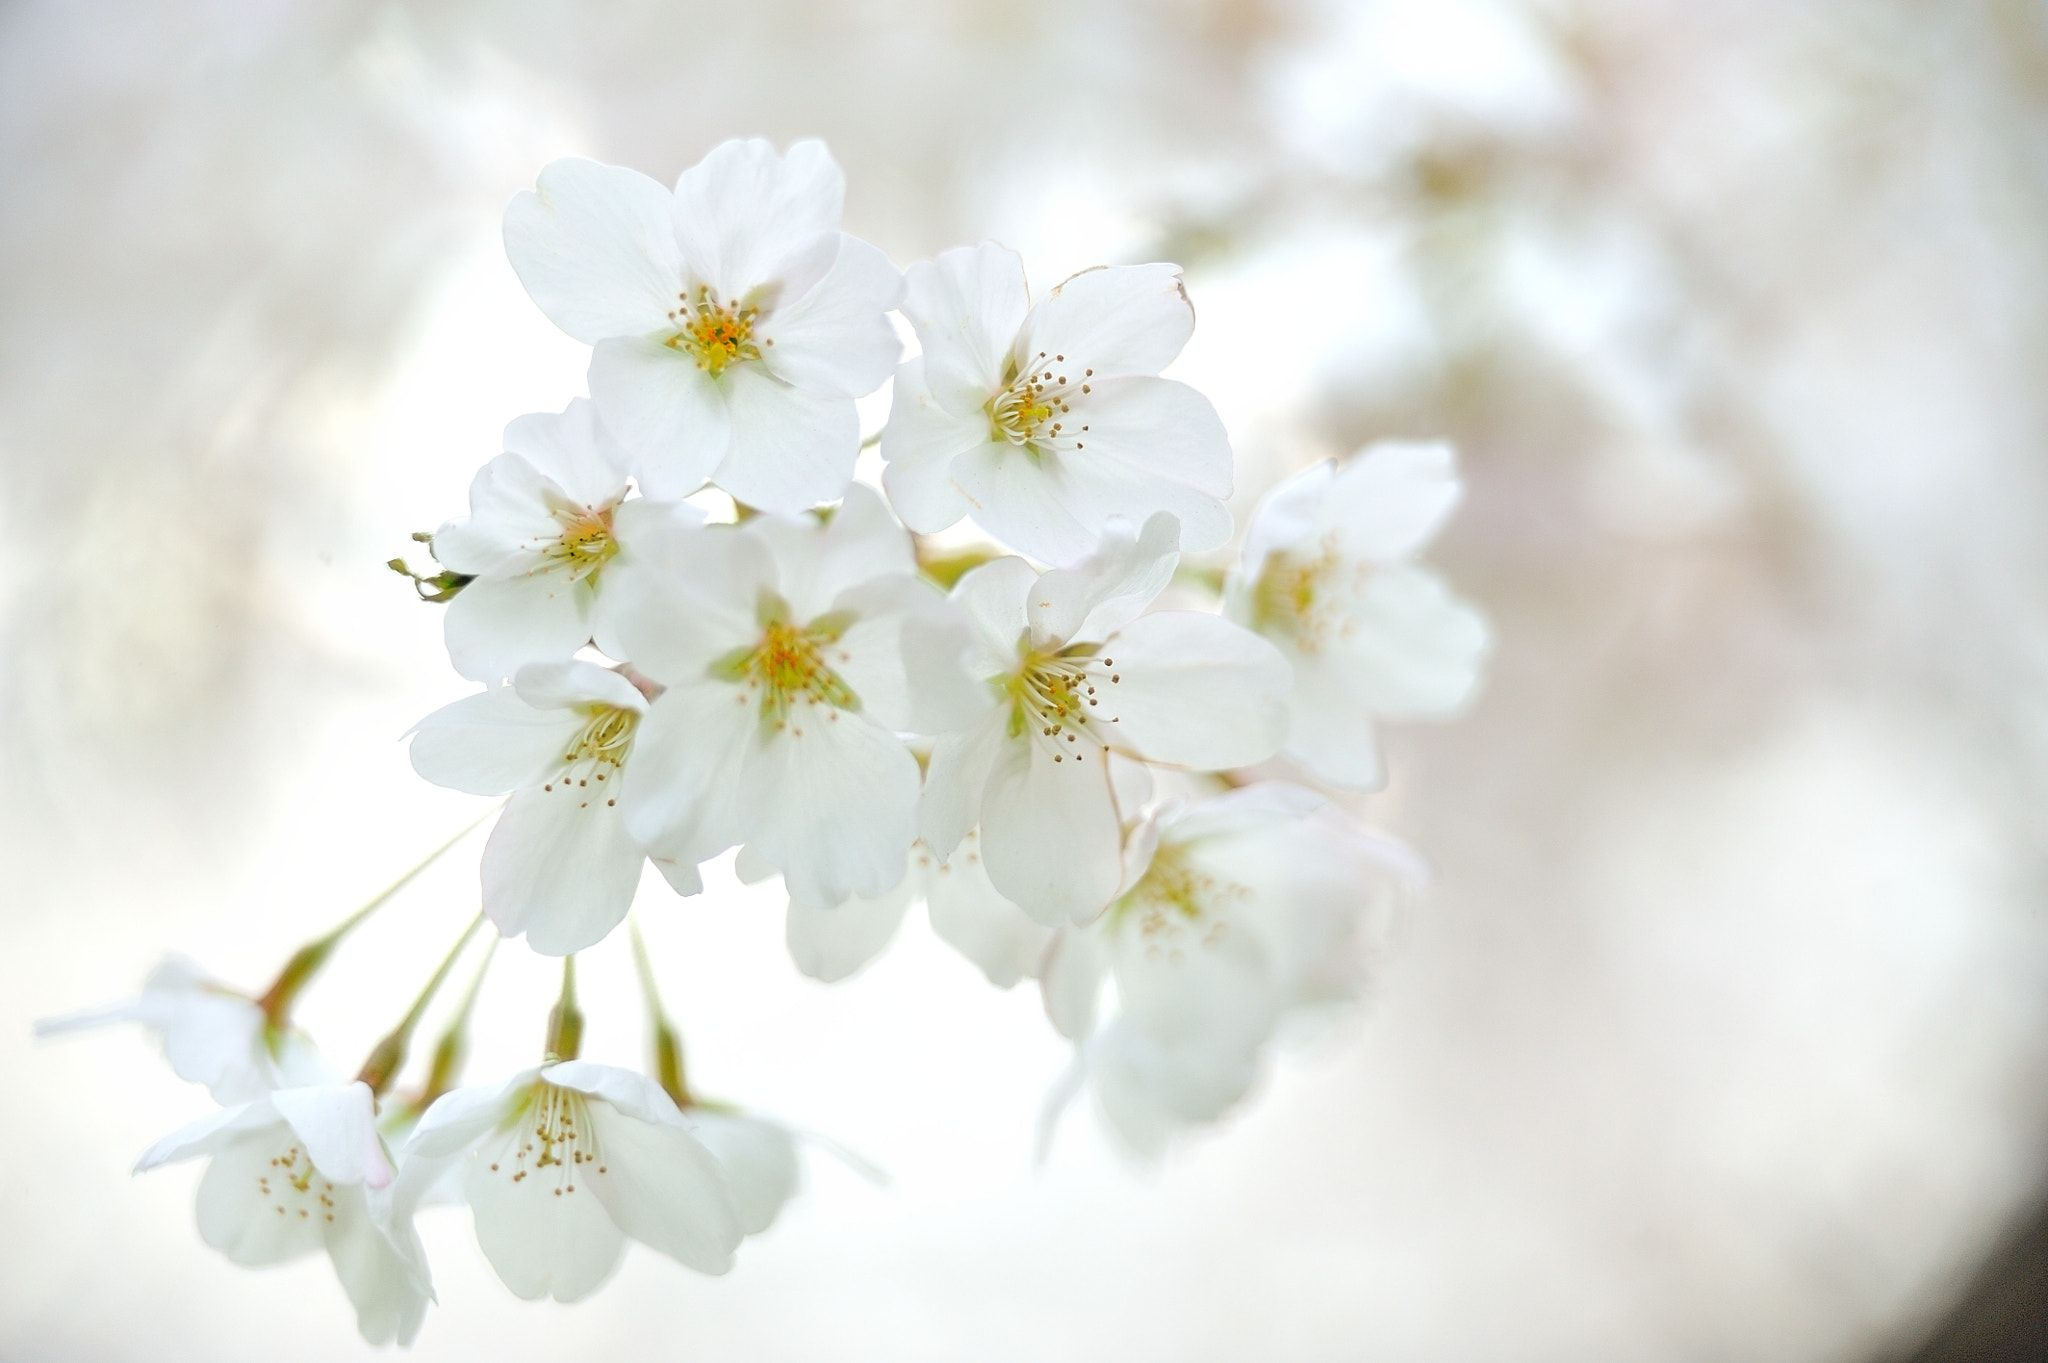 White Cherry Tree In The White Many Cherry Blossoms Are In Full Bloom On The Trees It Is A Cherry Tree Tha White Cherry Blossom White Cherries Sakura Flower